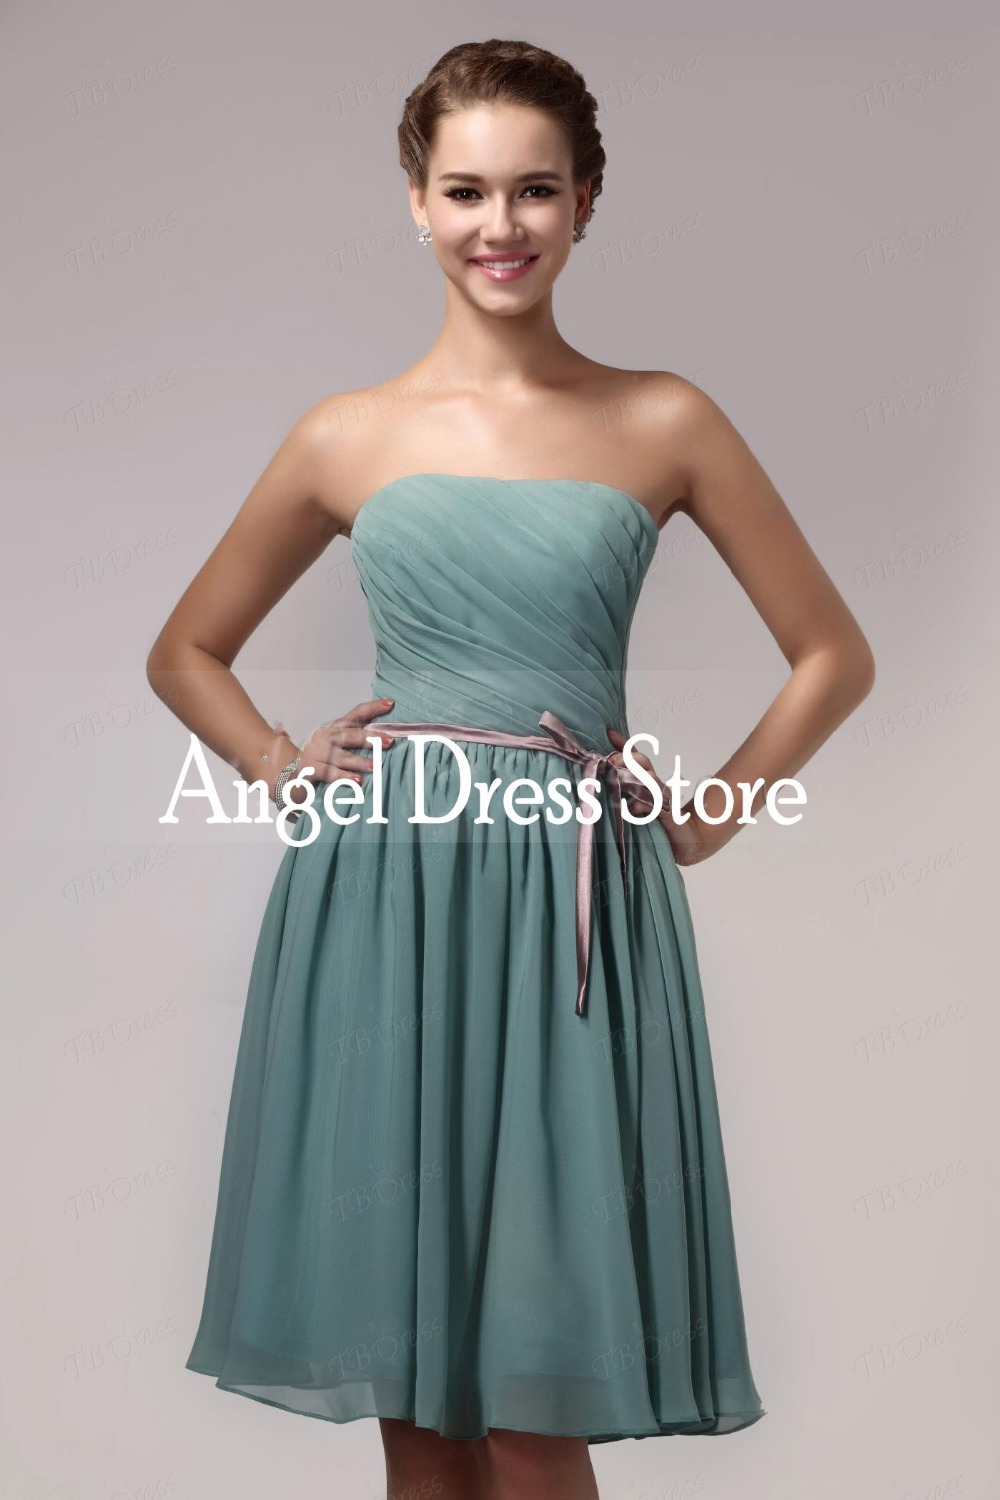 Sage and brown bridesmaid dresses dress images sage and brown bridesmaid dresses ombrellifo Image collections